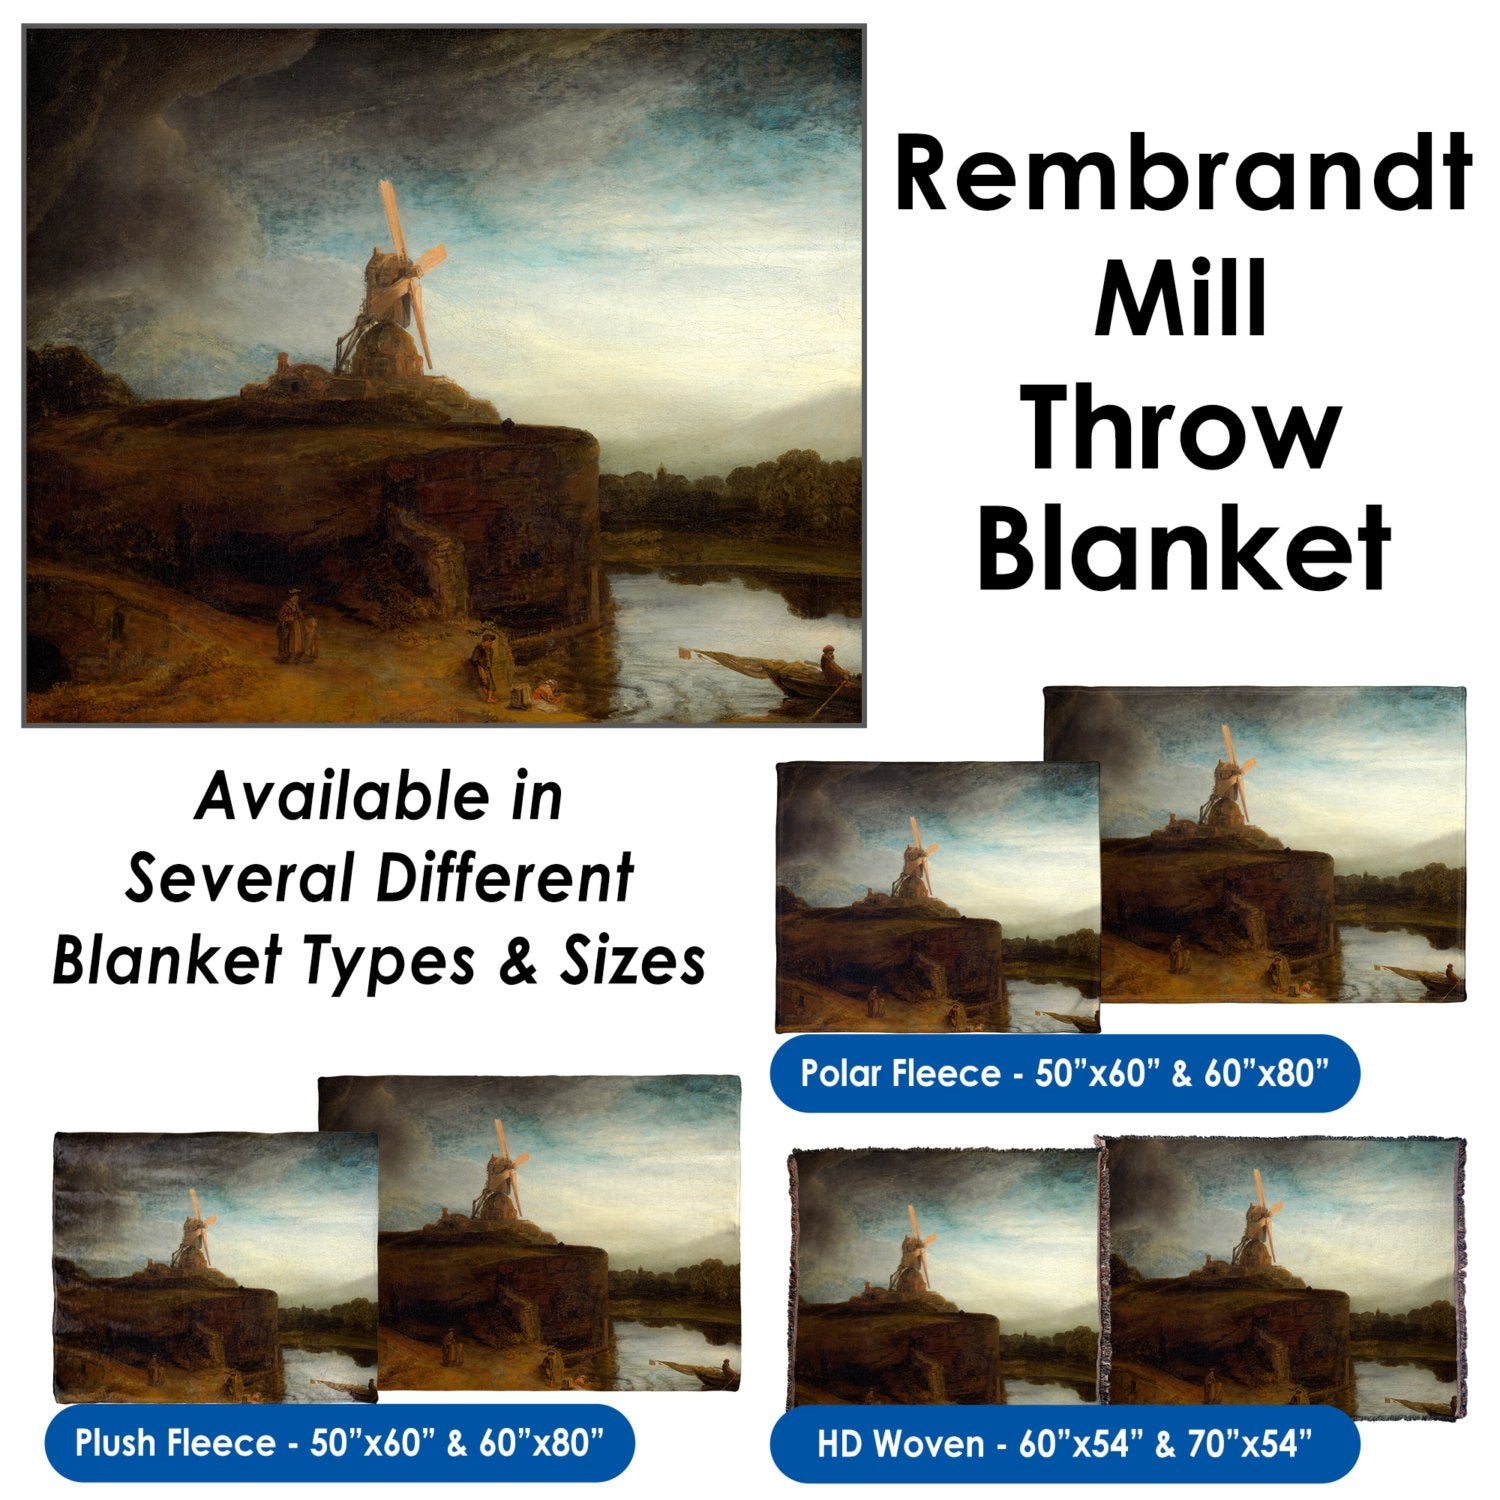 Rembrandt's The Mill - Throw Blanket / Tapestry Wall Hanging